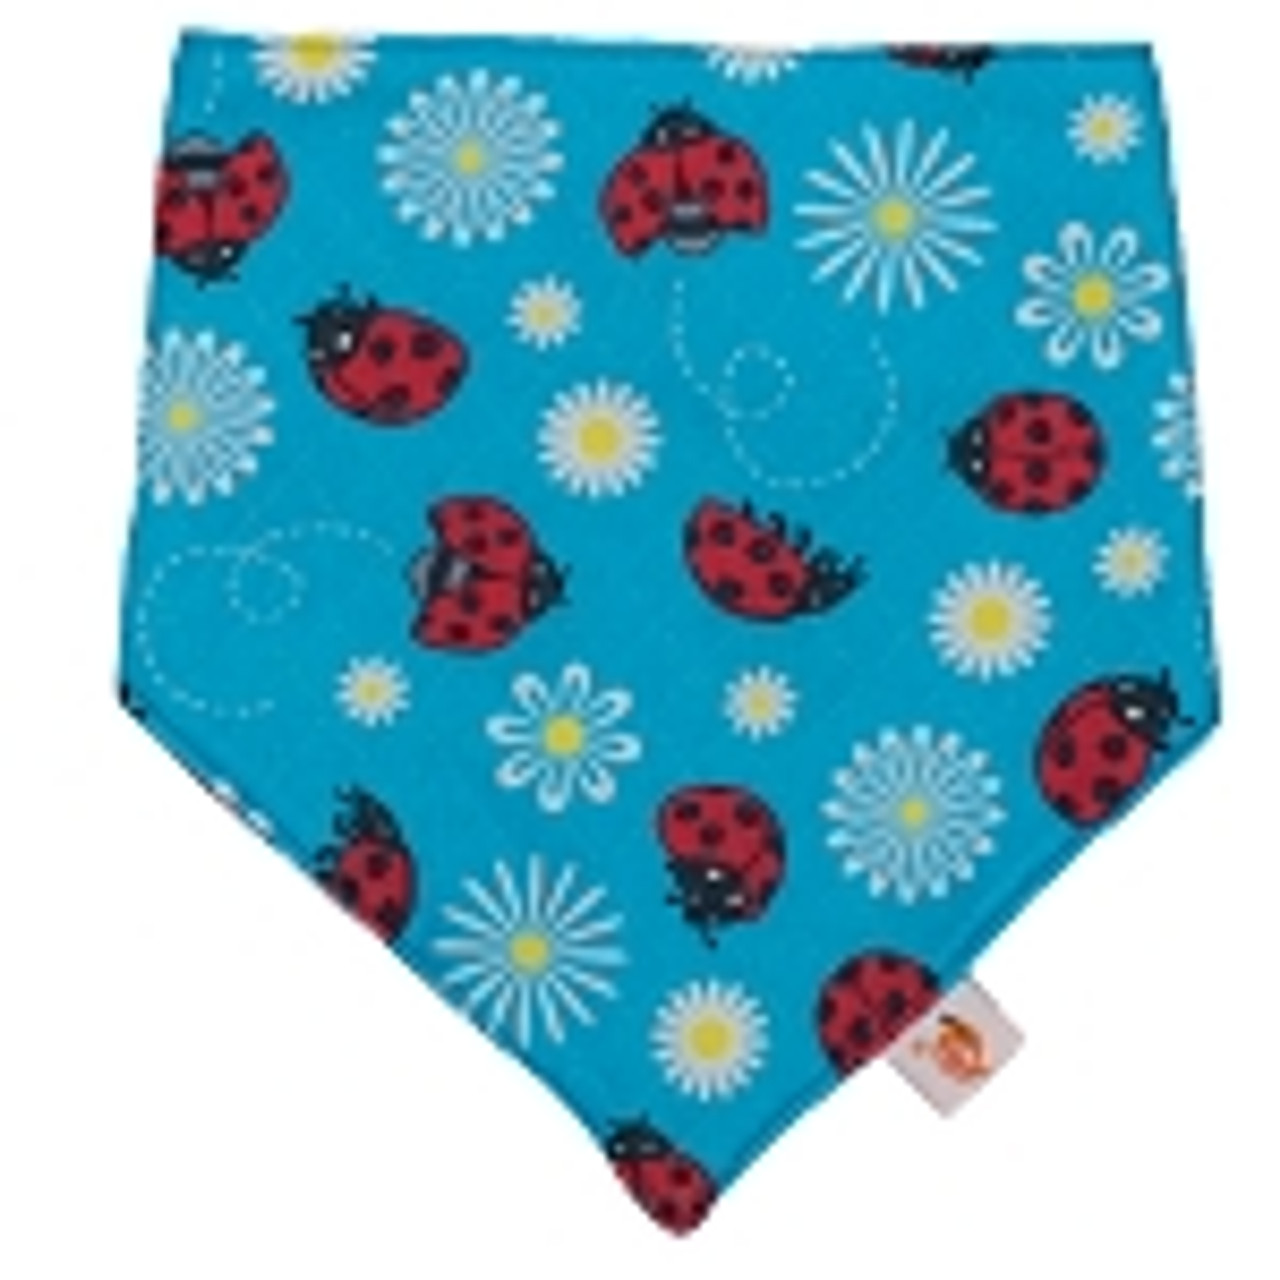 Little Lady Bug by Smart Bottoms